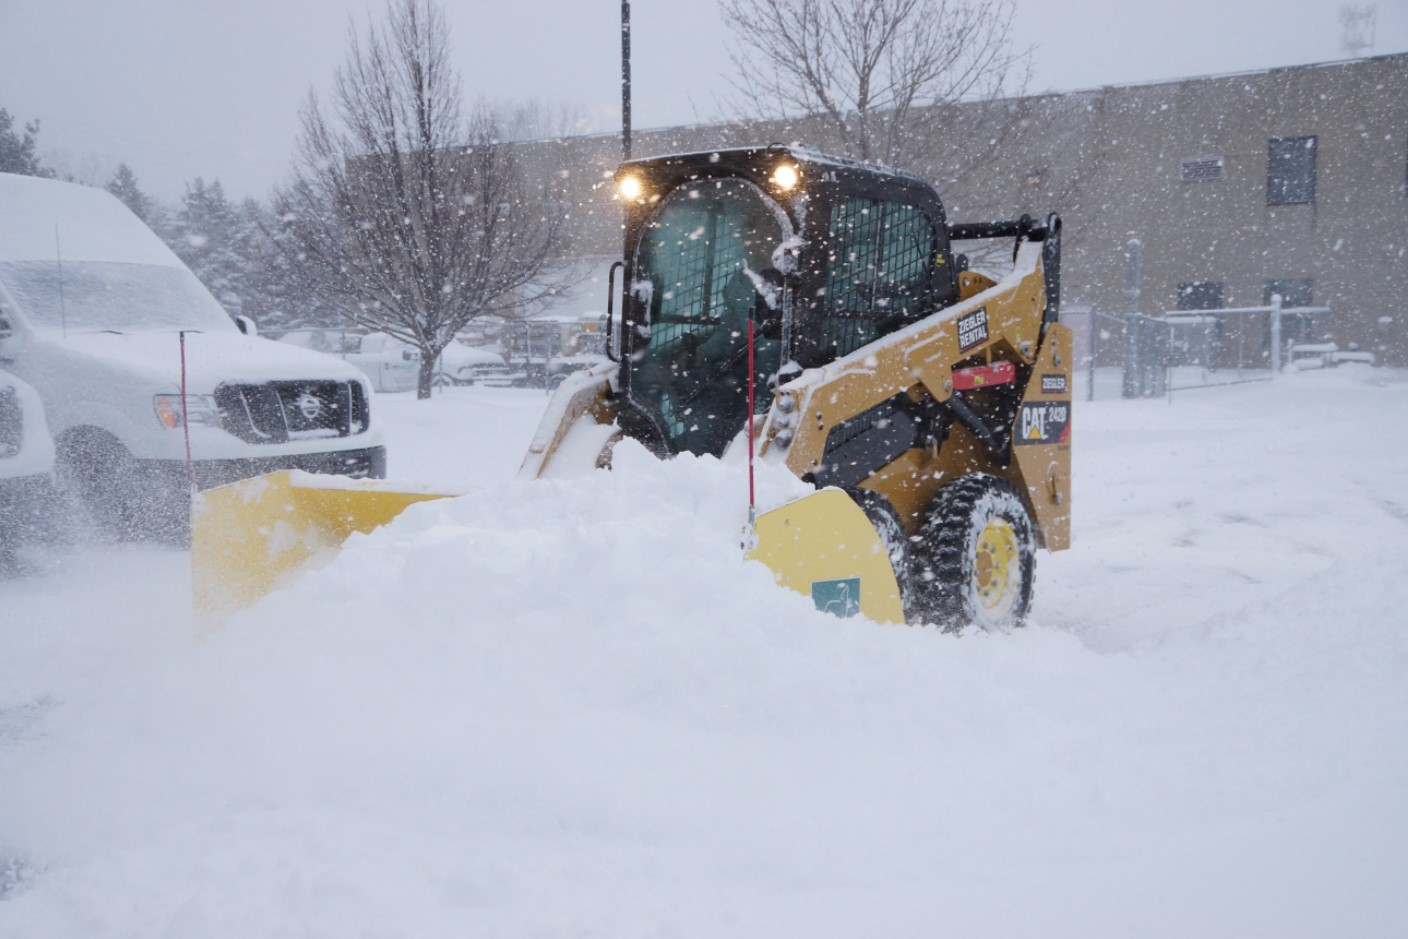 So You Want To Get Into The Snow Removal Business